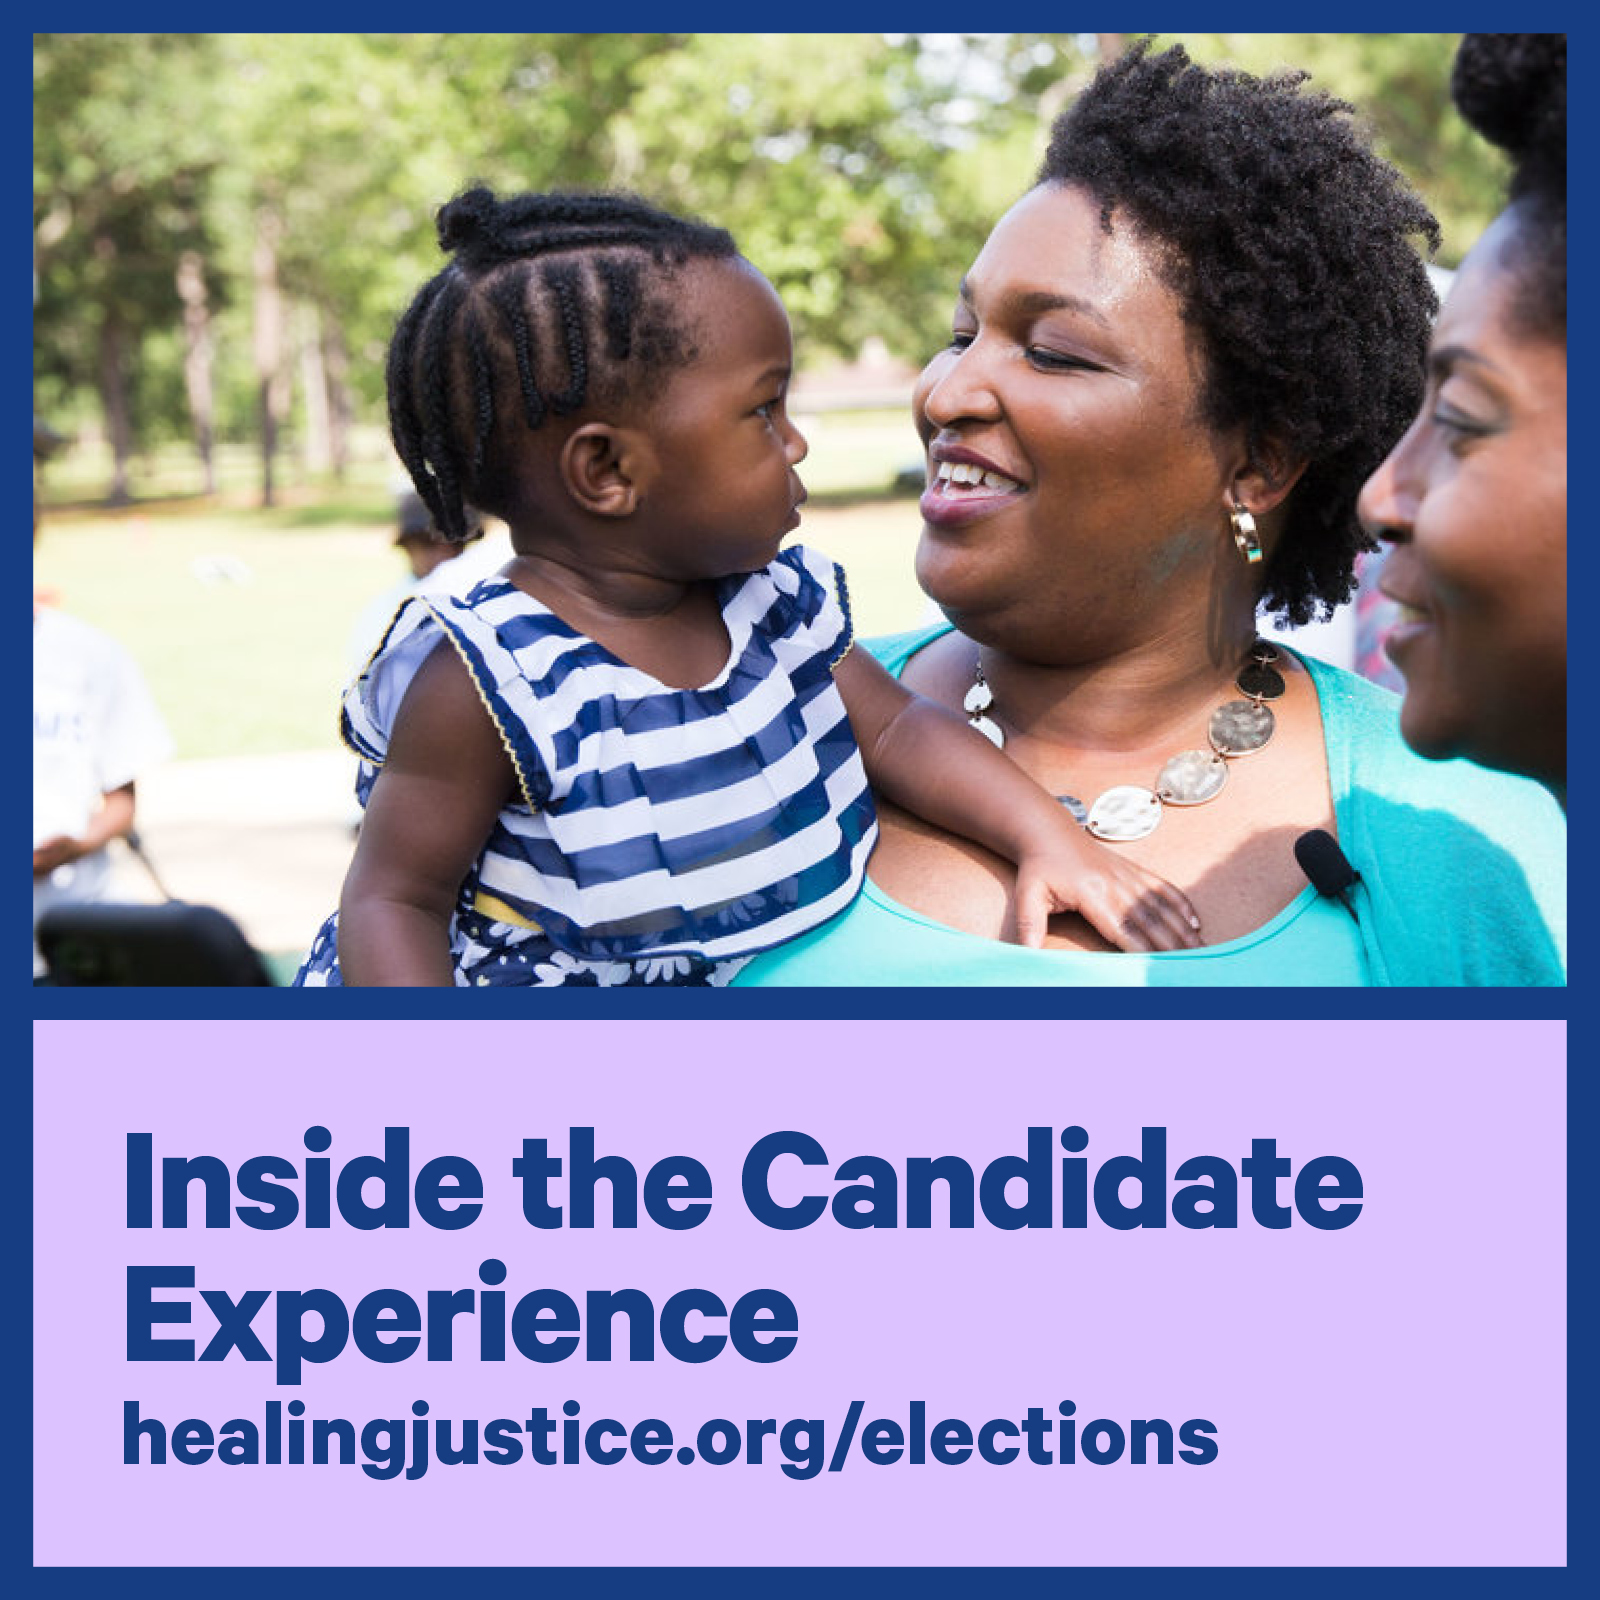 Inside the Candidate Experience with Stacey Abrams, Ashlee Marie Preston, & Nelini Stamp